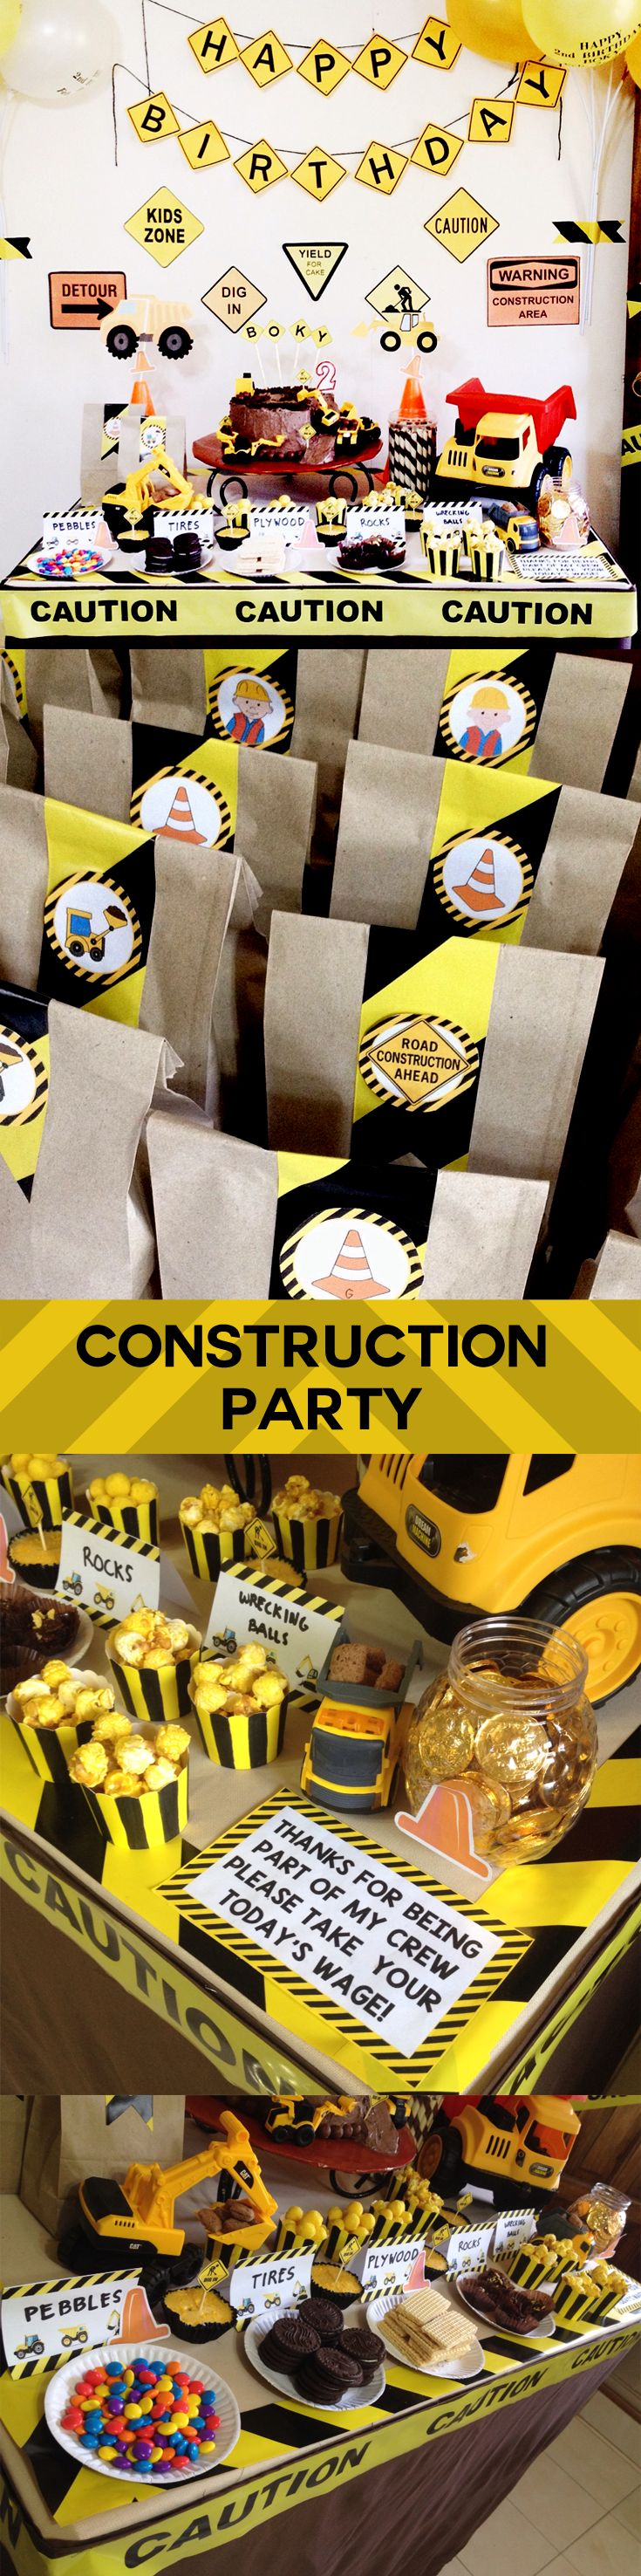 DIY CONSTRUCTION PARTY : Dump Truck, lootbags, favor bags, caution tape, safety cone